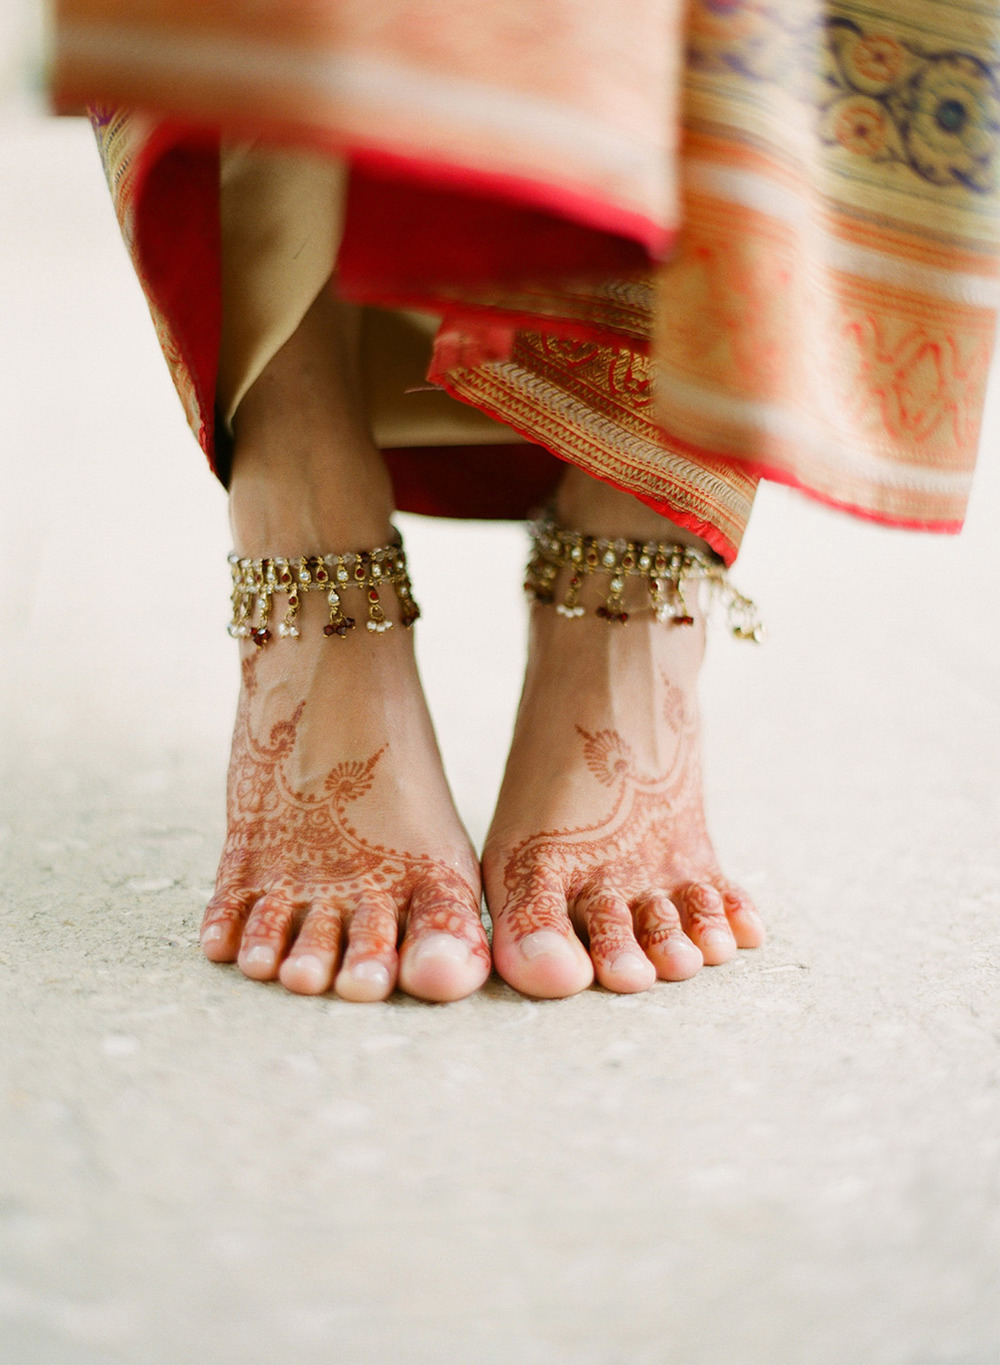 destination wedding photographer lexia frank- a top indian wedding photographer - photographs this luxury indian wedding in florida and the bride's mehndi designs on her feet with anklets  on film as she is a film photographer for indian weddings because she prefers the tonality of film and vibrant colors for indian weddings. manish malhotra